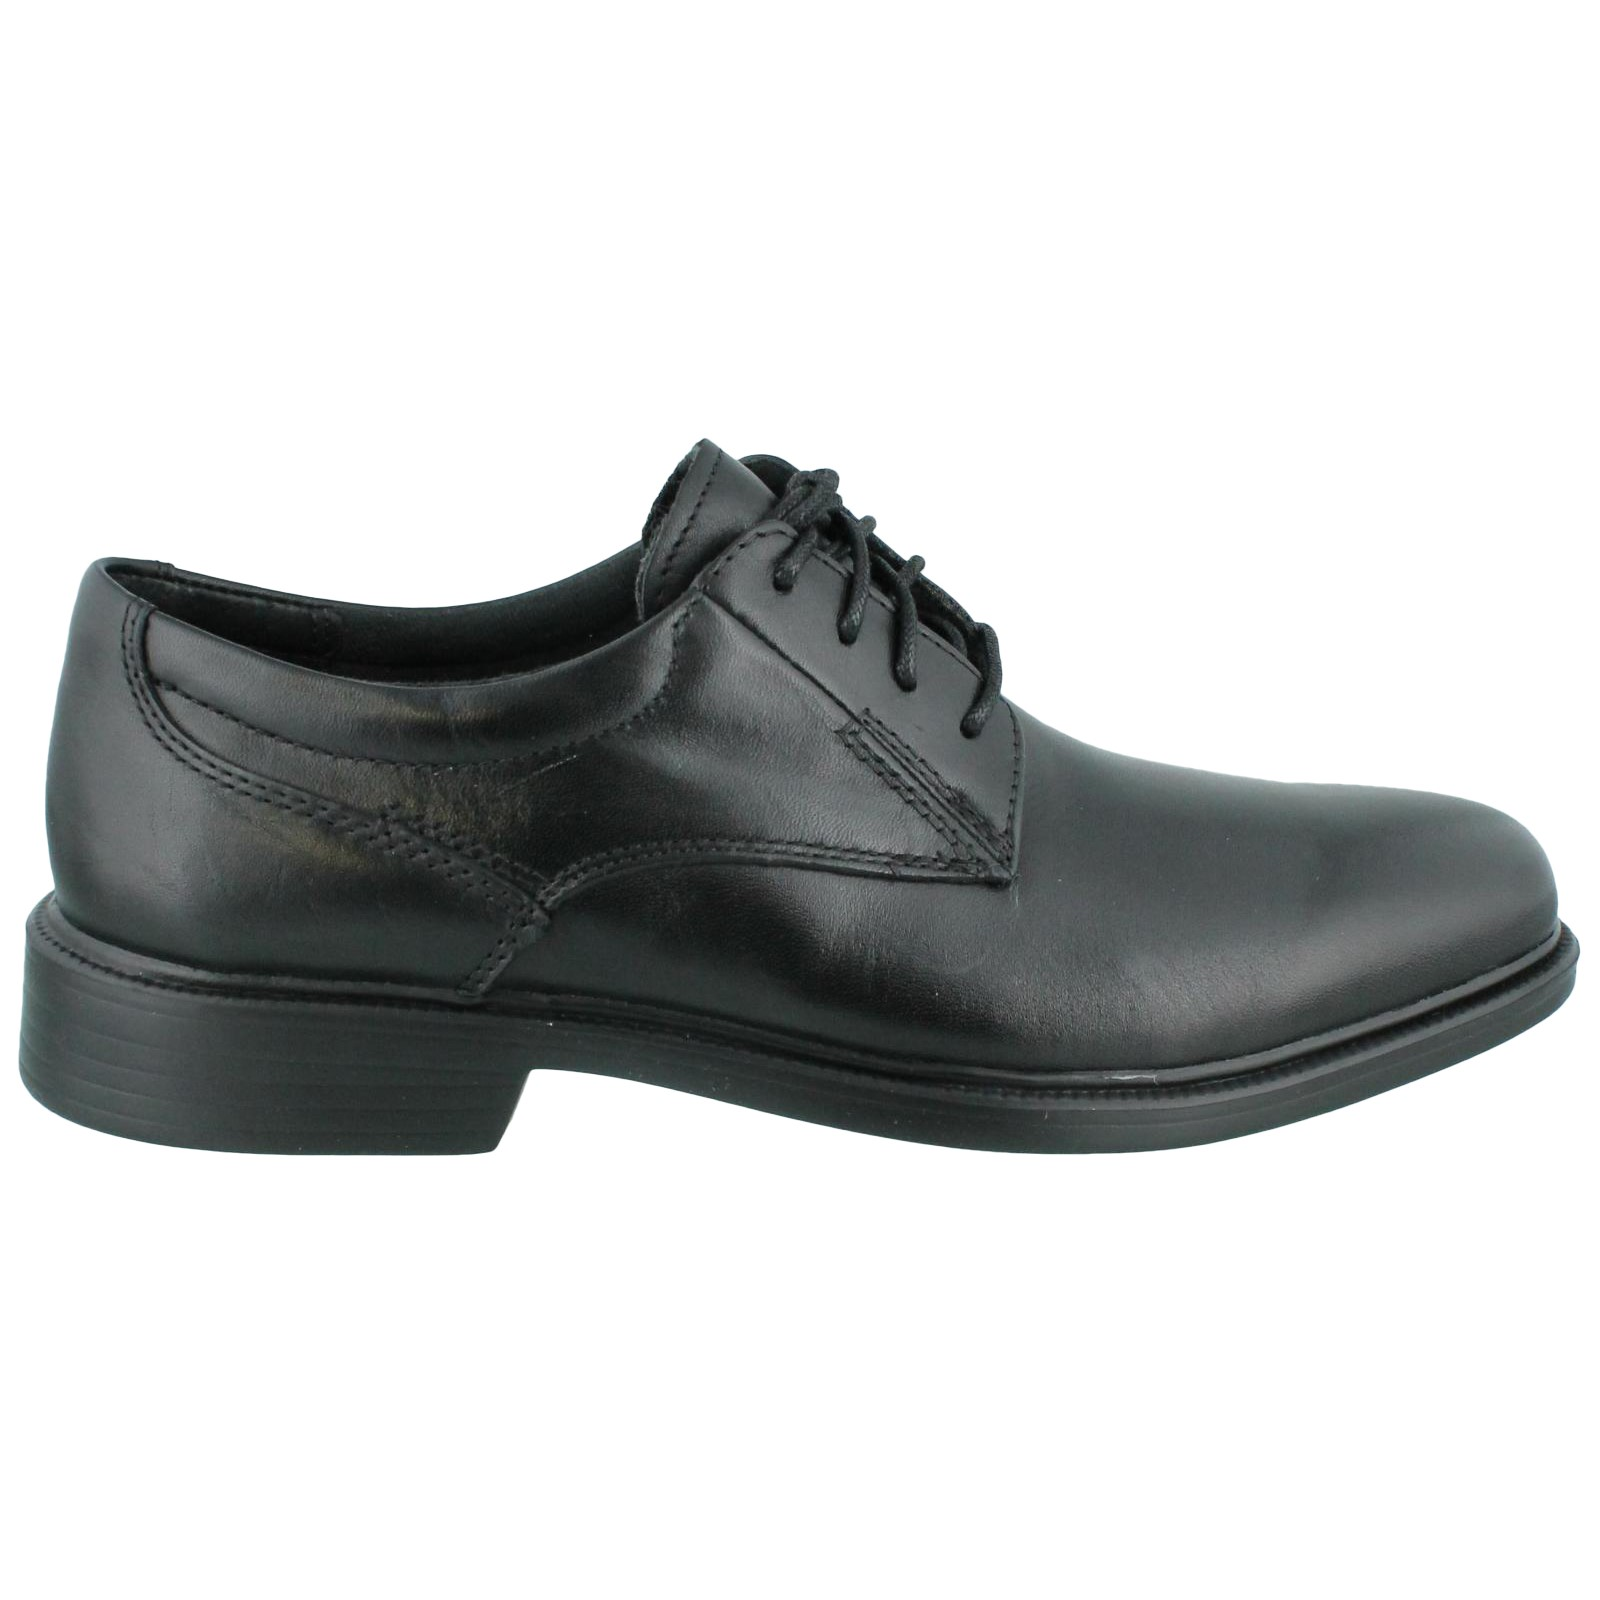 Men's Bostonian, Wendell Lace-up plain toe dress shoe